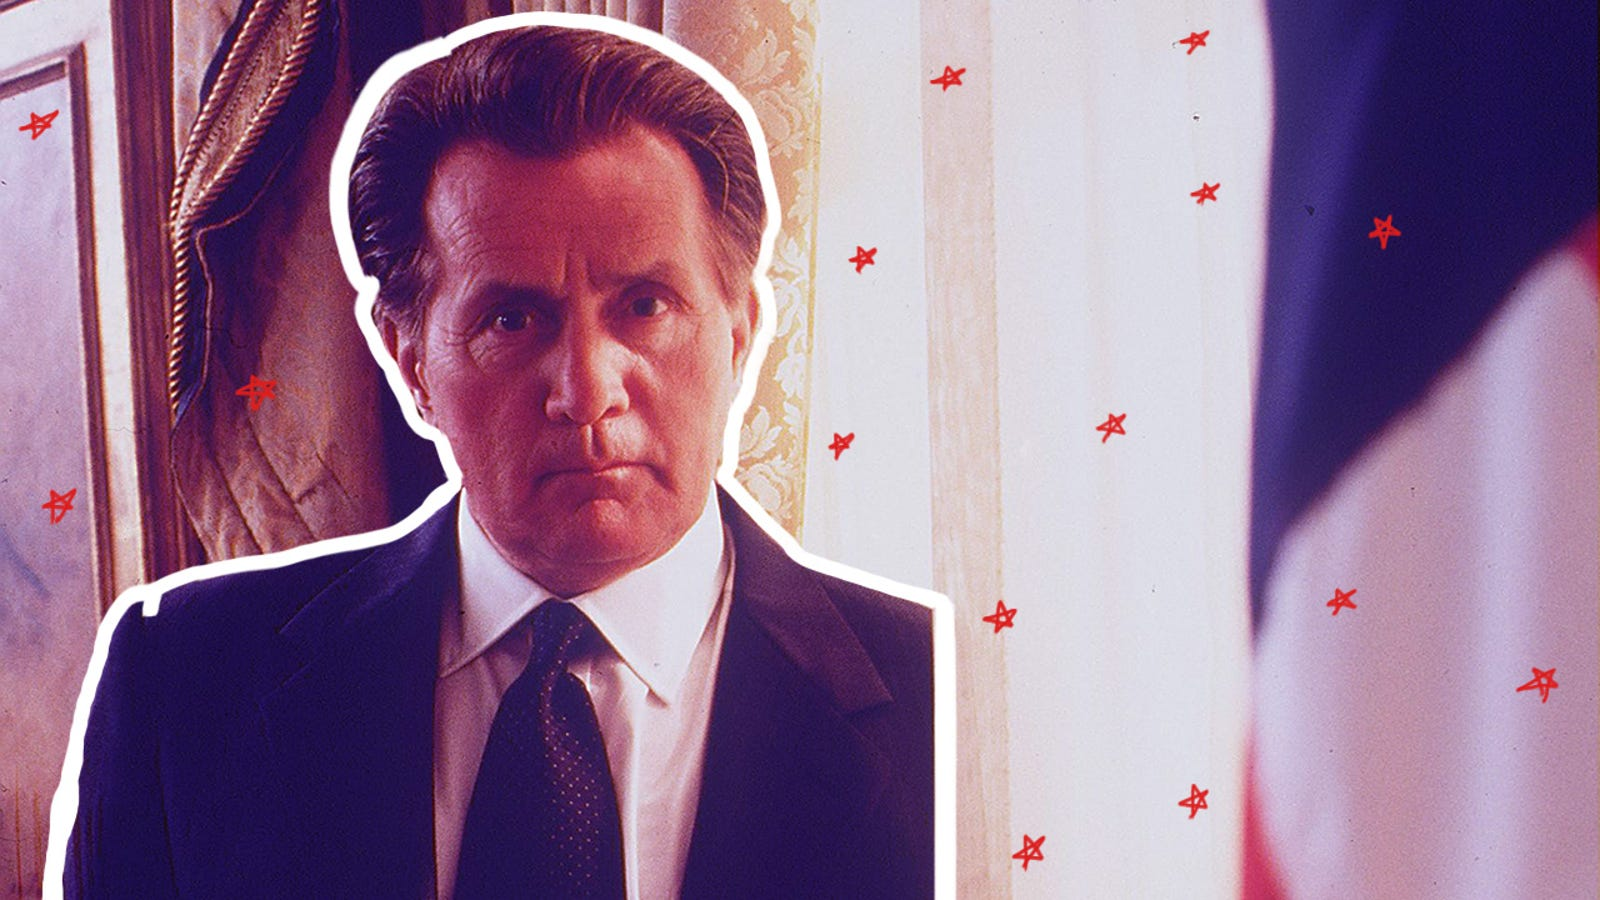 Martin Sheen doesn't think celebrity qualifies you for the